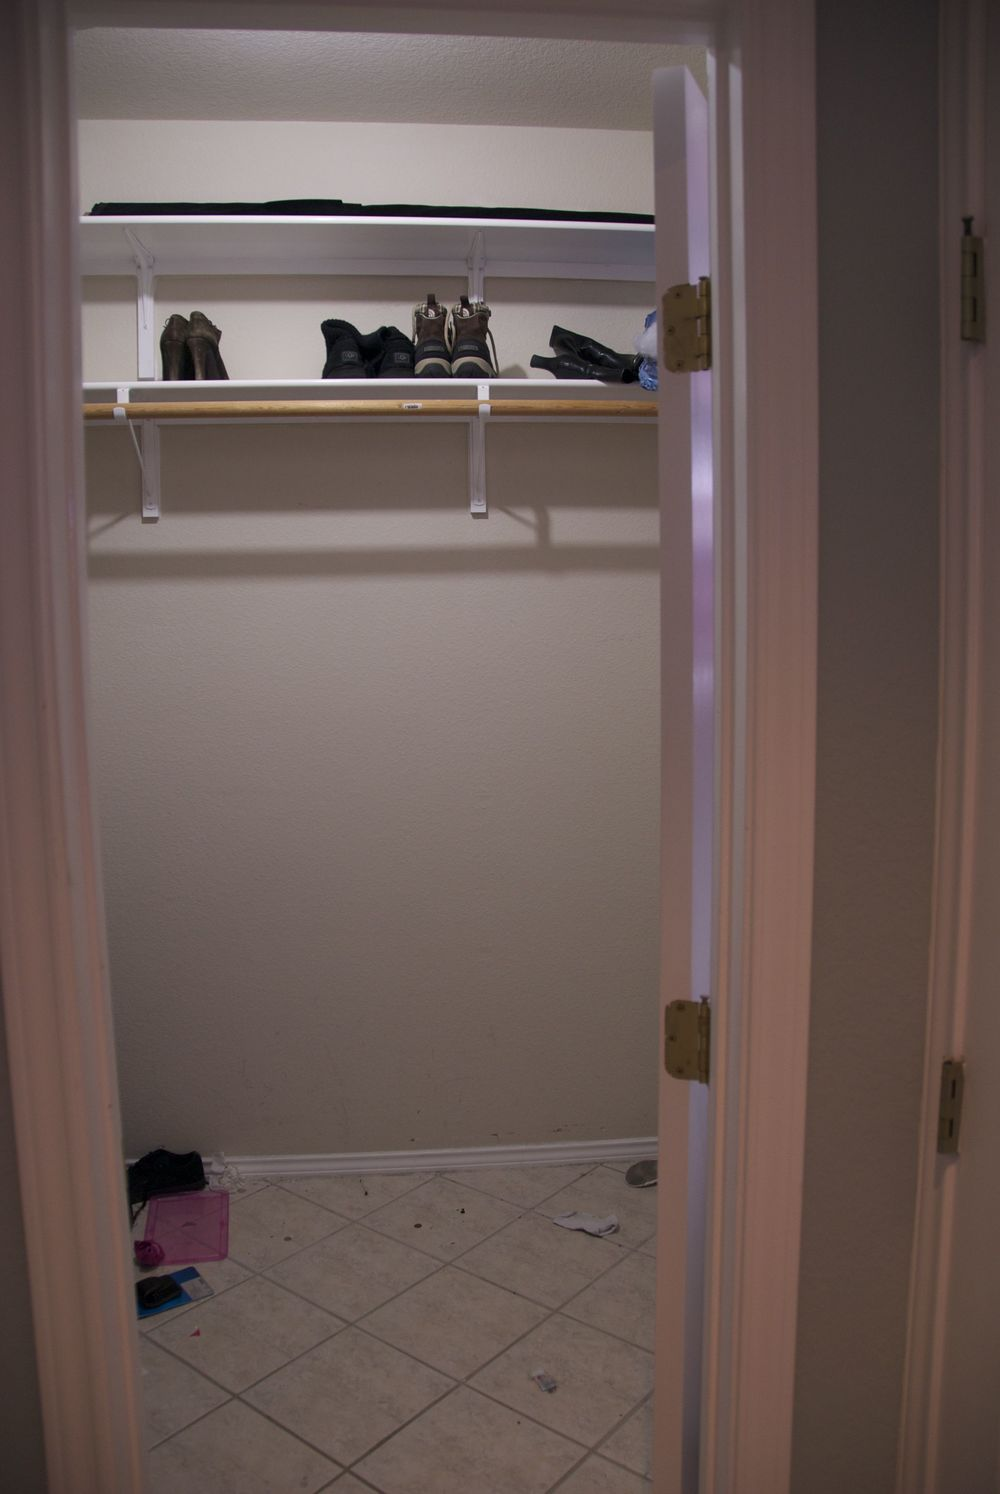 Builder basic closet - The view from the door